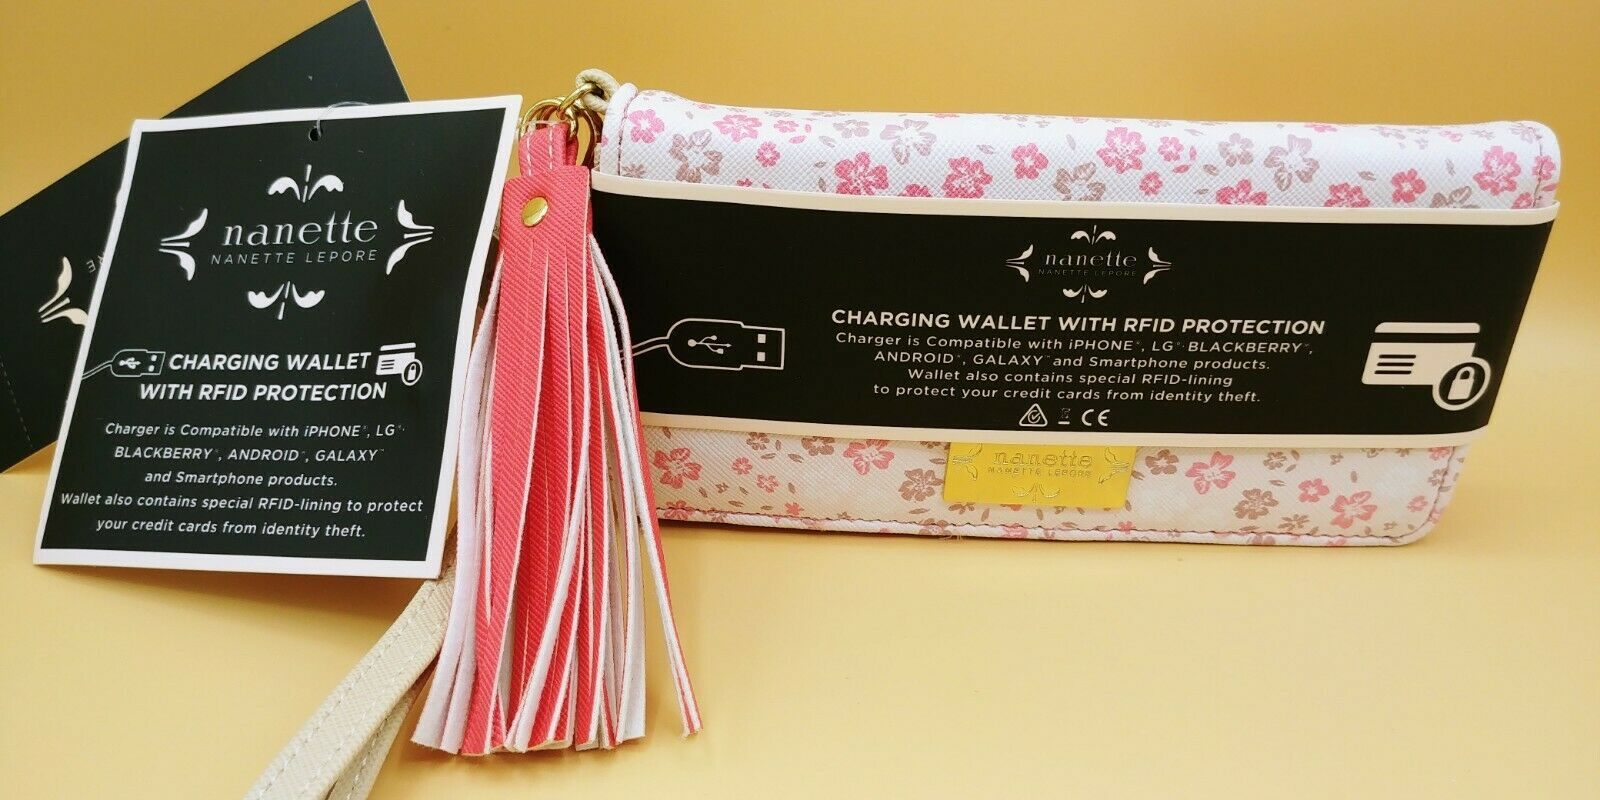 Nanette Lepore Charging Wallet Clutch RFID Protection Power Bank iPhone Android